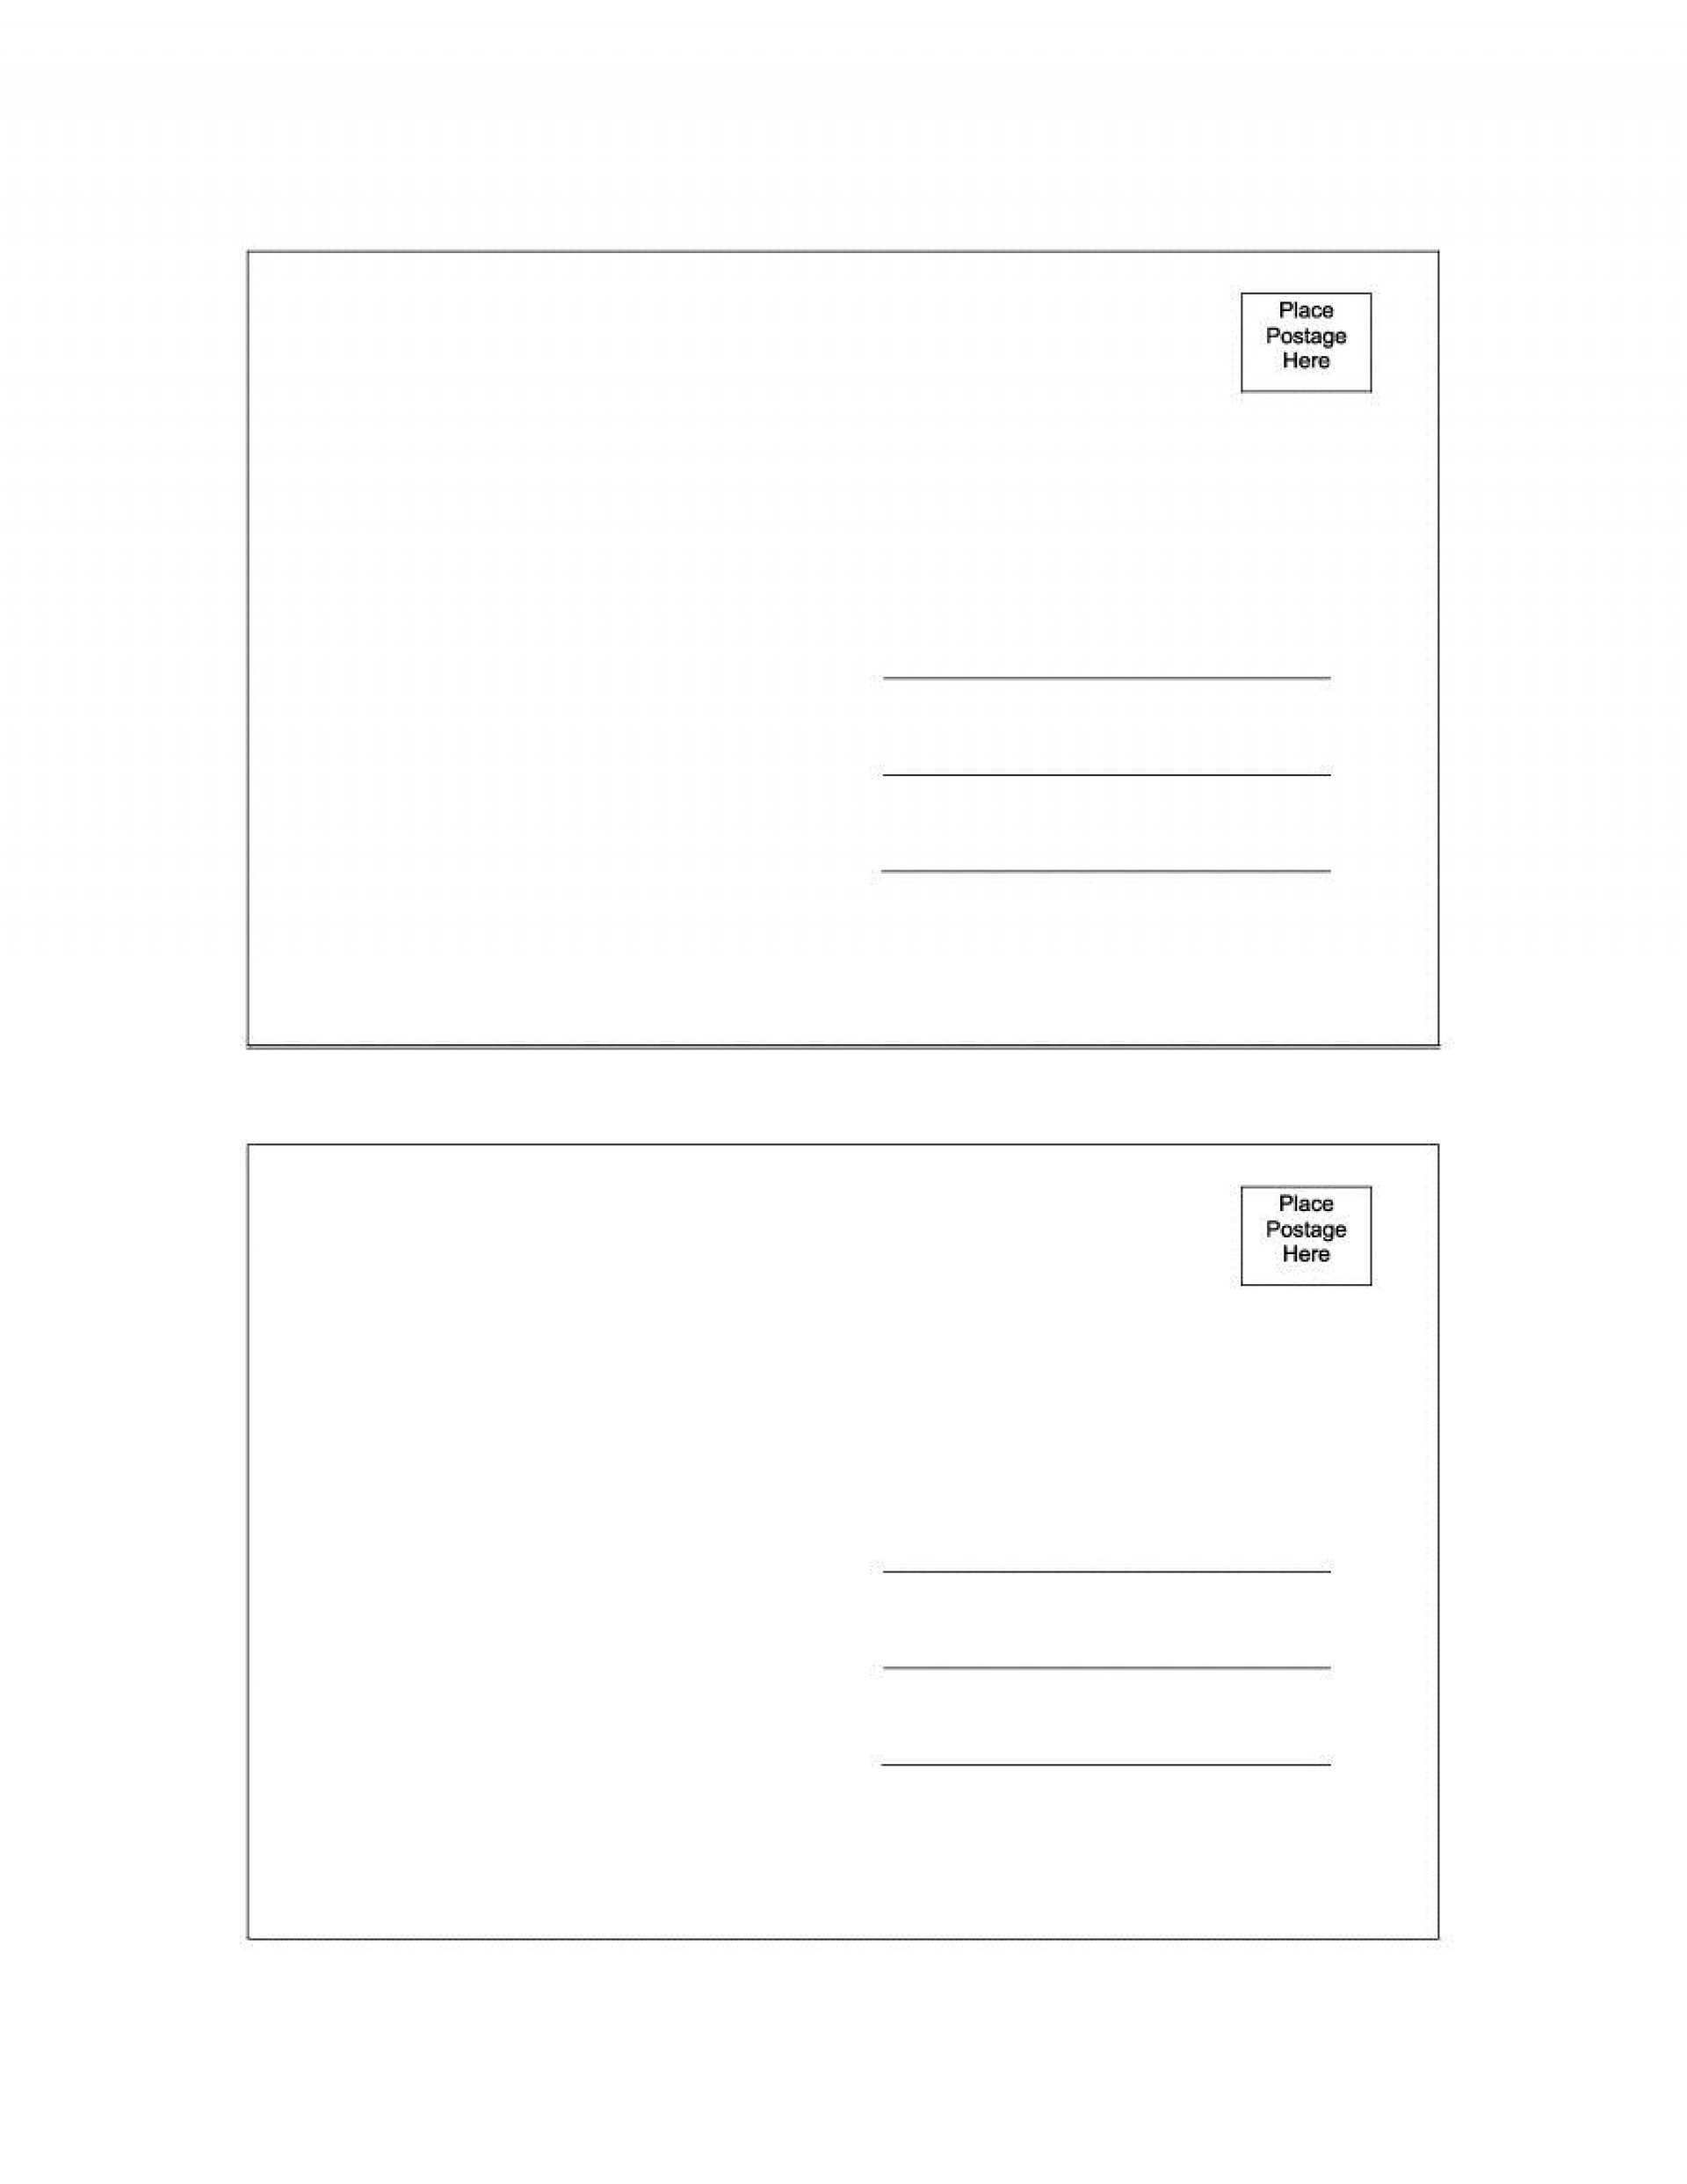 000 Amazing Postcard Layout For Microsoft Word Photo  4 Template1920